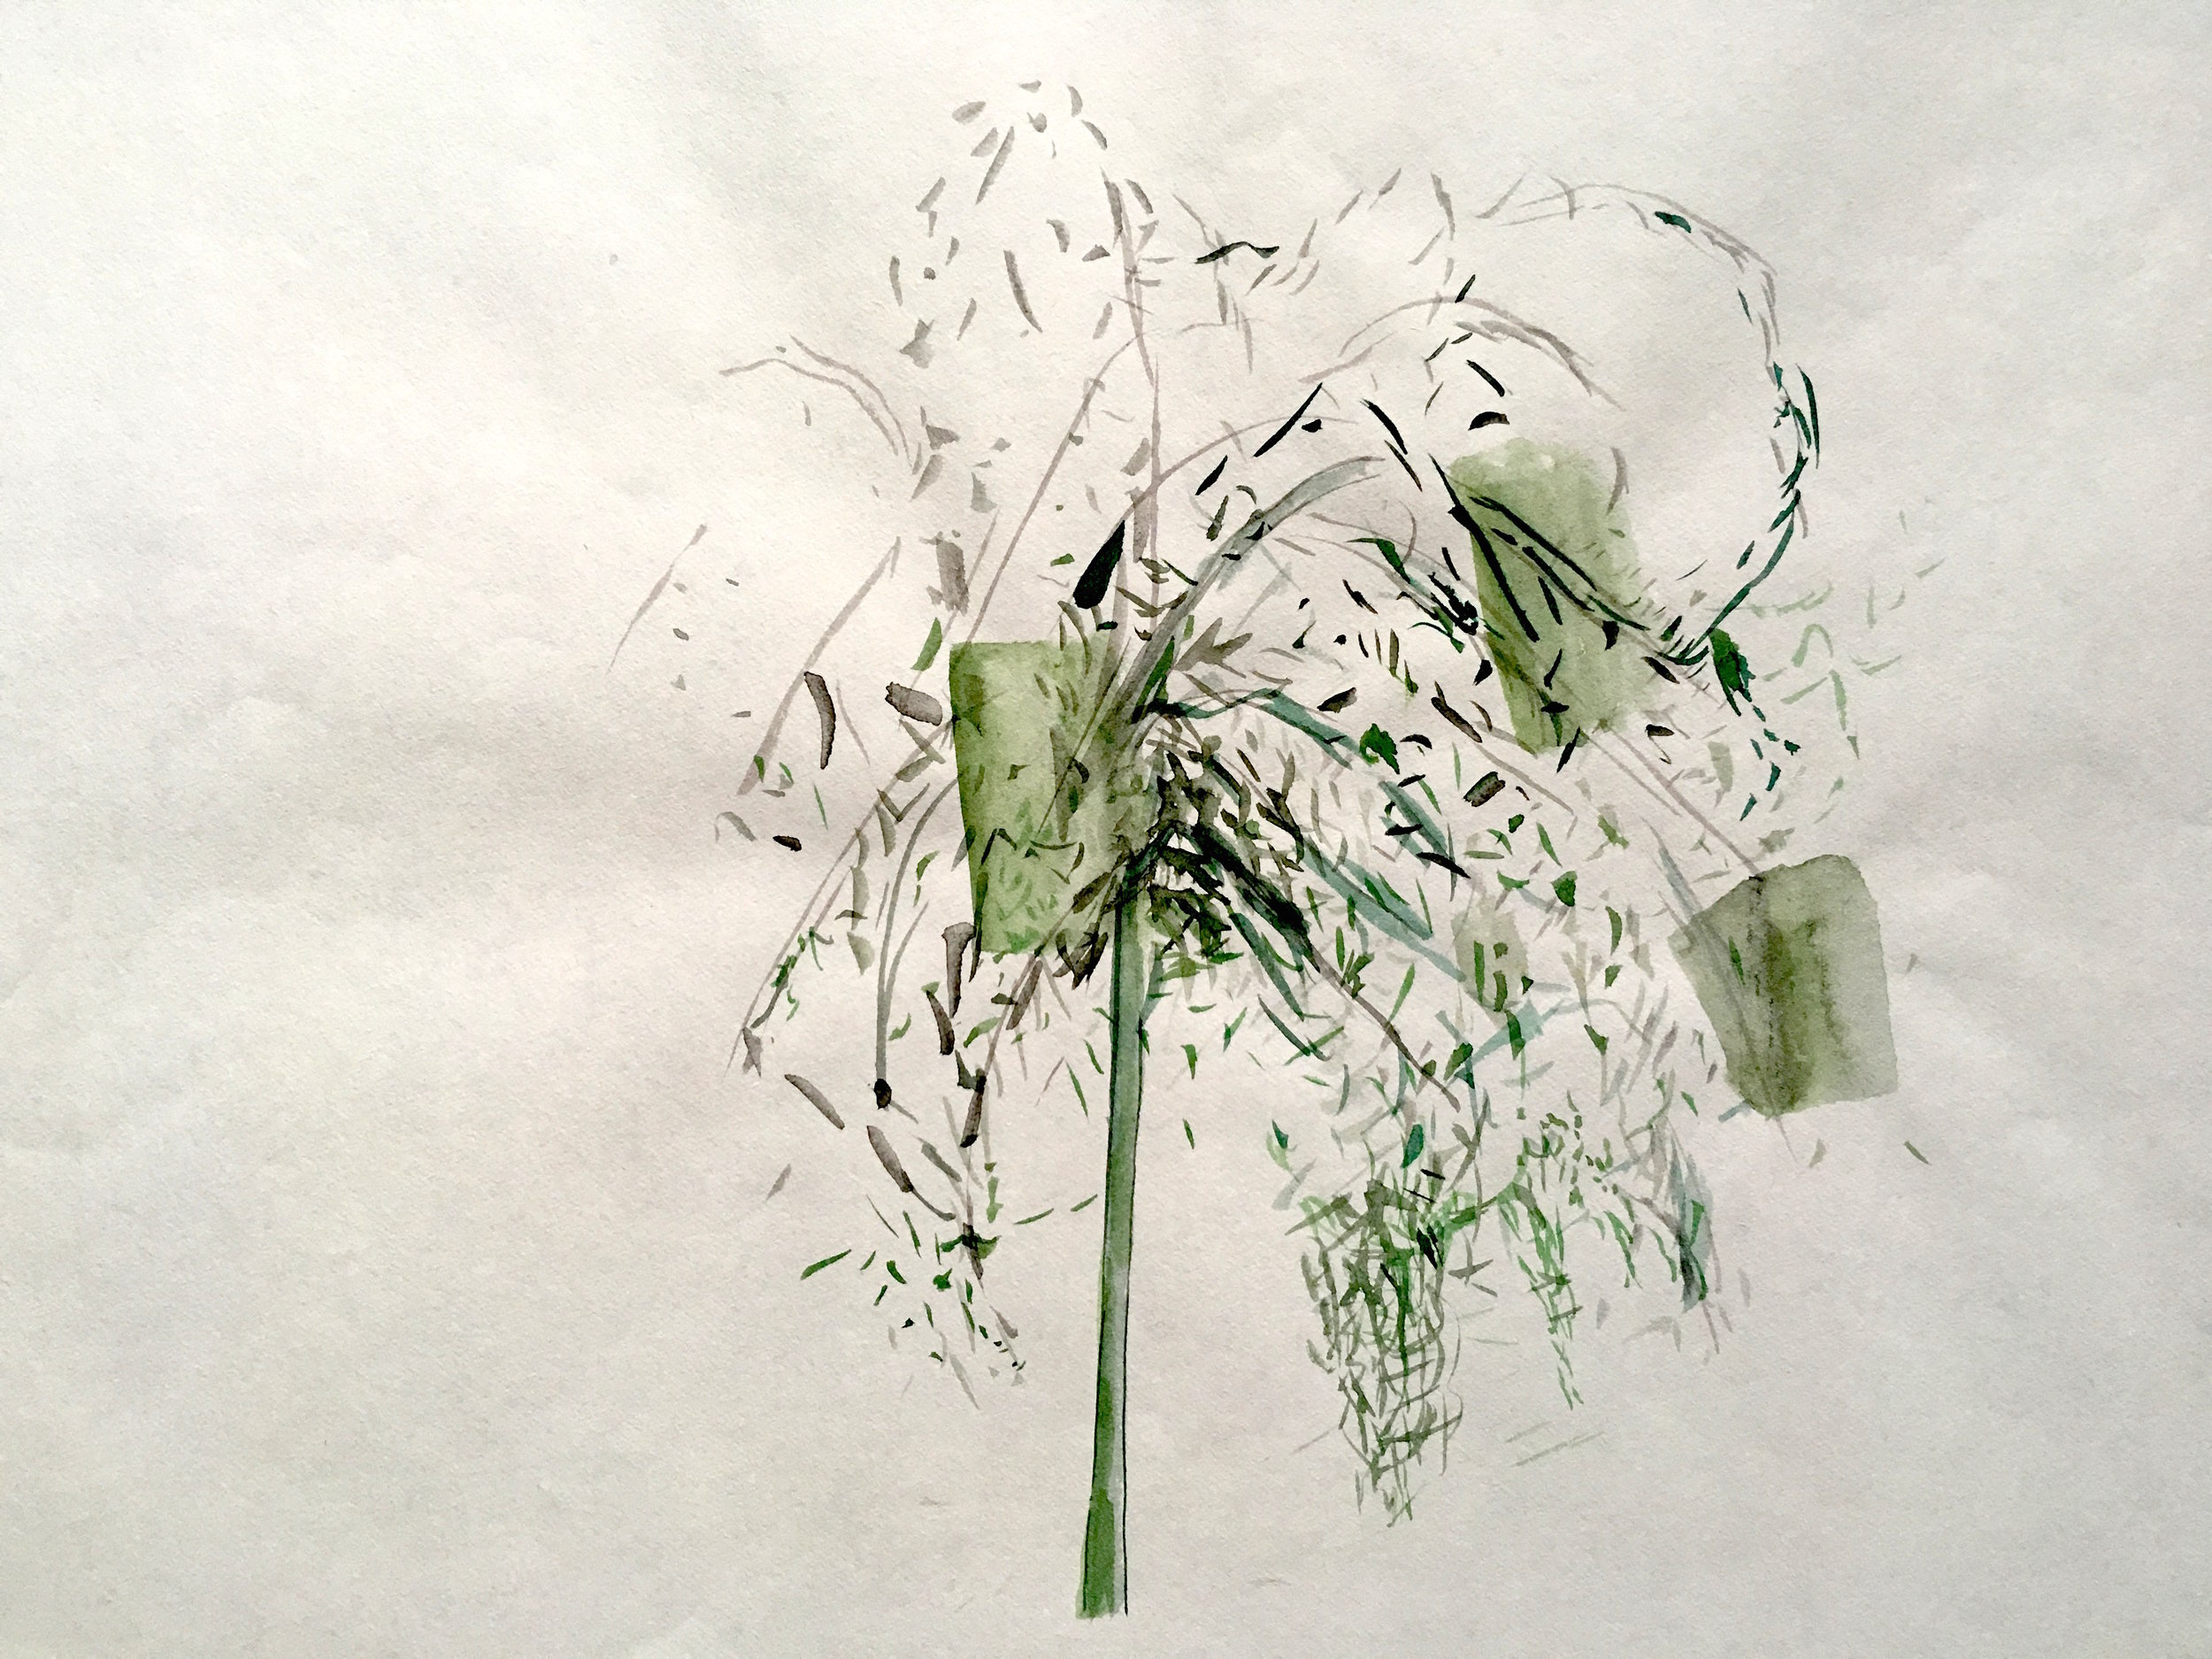 Untitled, Rosilene Ludovico, Mixed media on paper, no Year, Schuebbe Inc.JPG